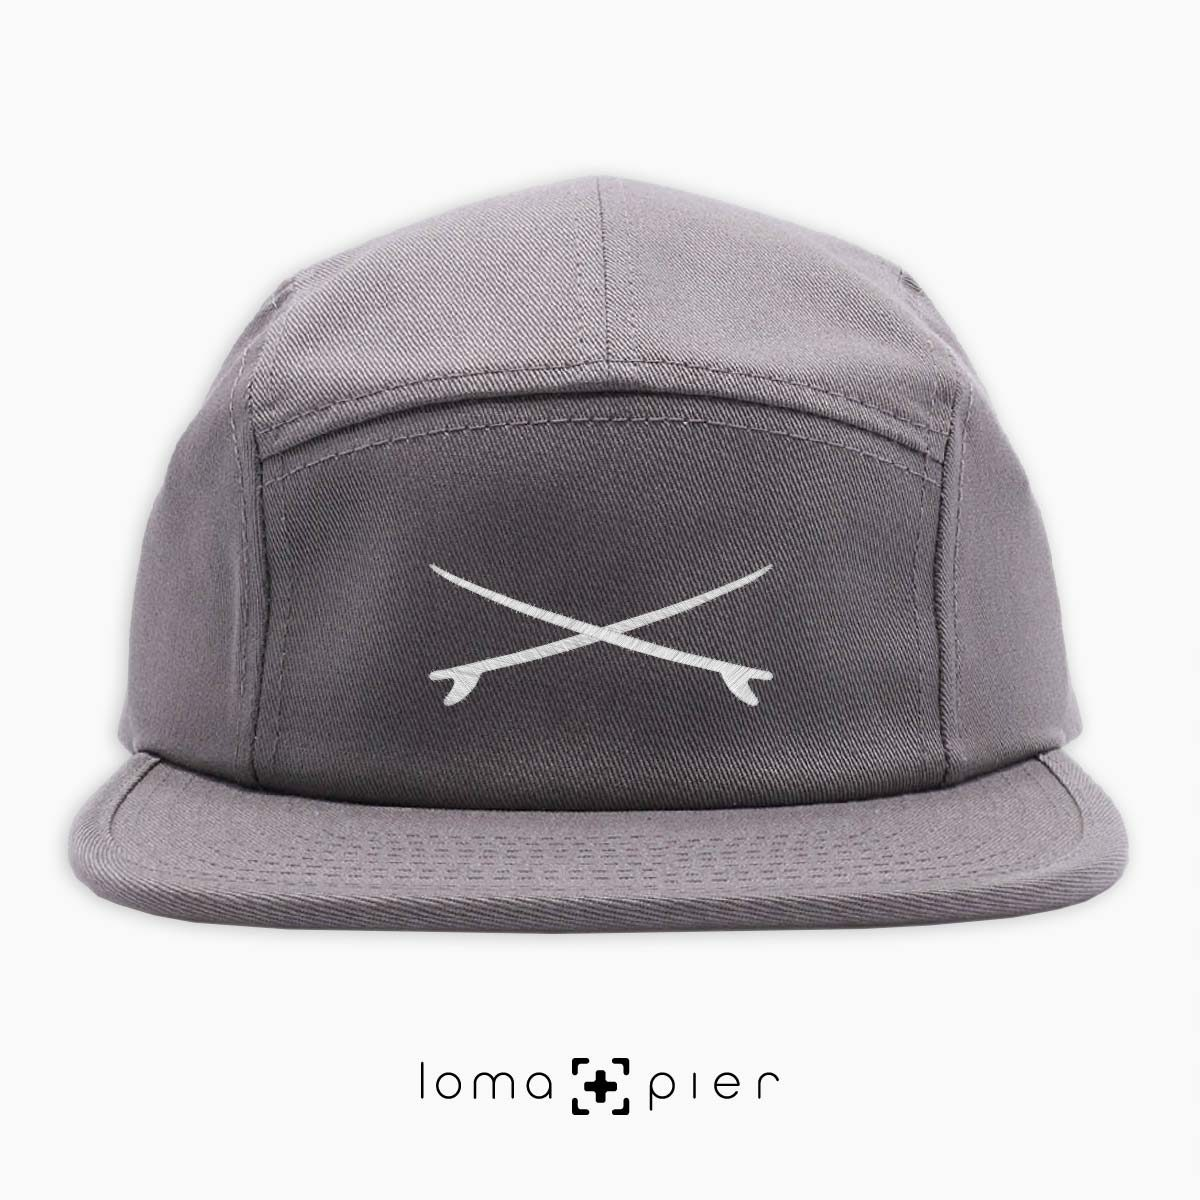 X MARKS THE SPOT icon embroidered on a grey cotton 5-panel hat by loma+pier hat store